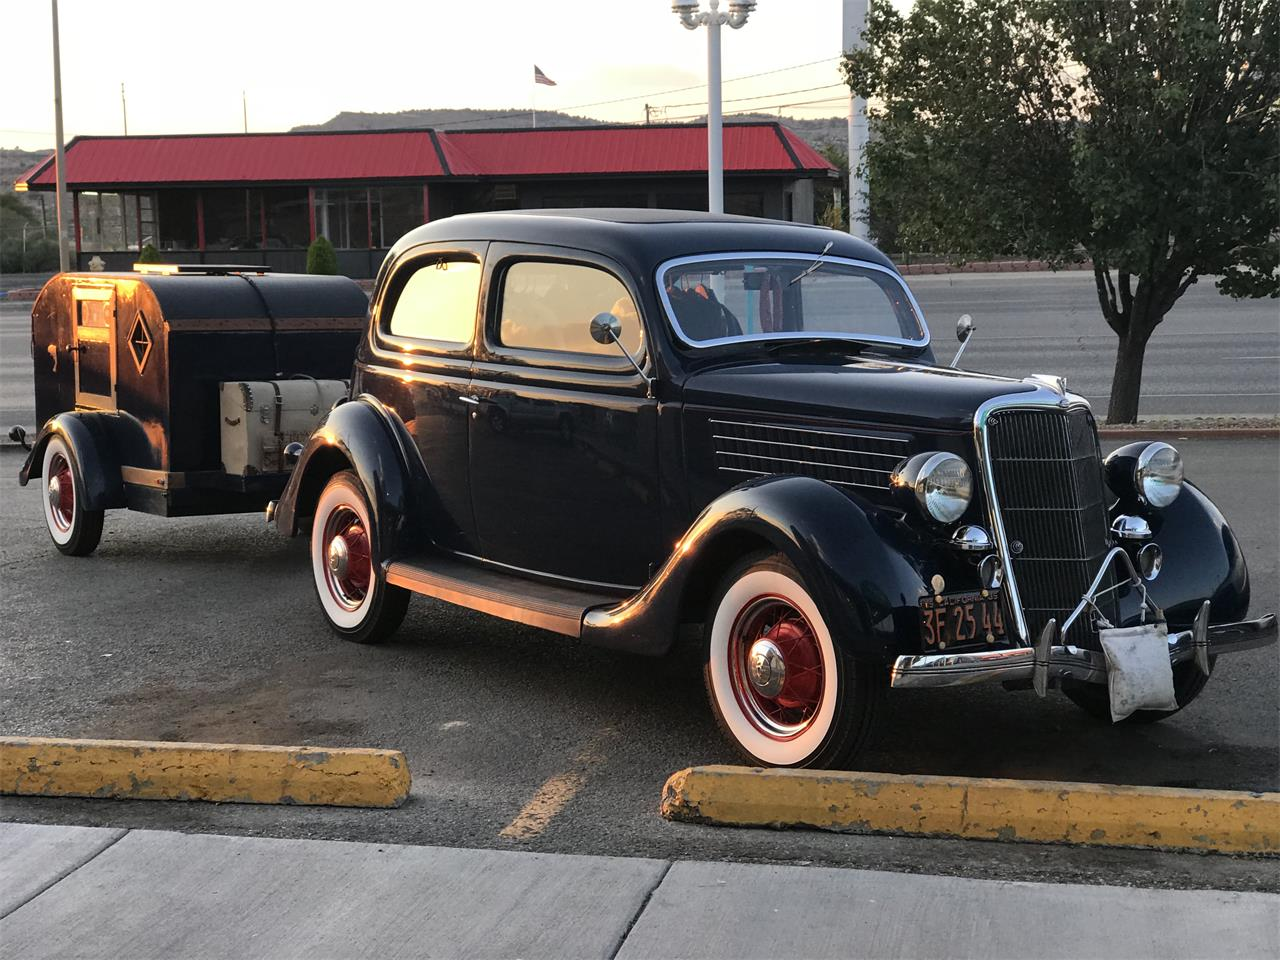 1935 Ford Tudor (CC-1192960) for sale in Seal Beach, California